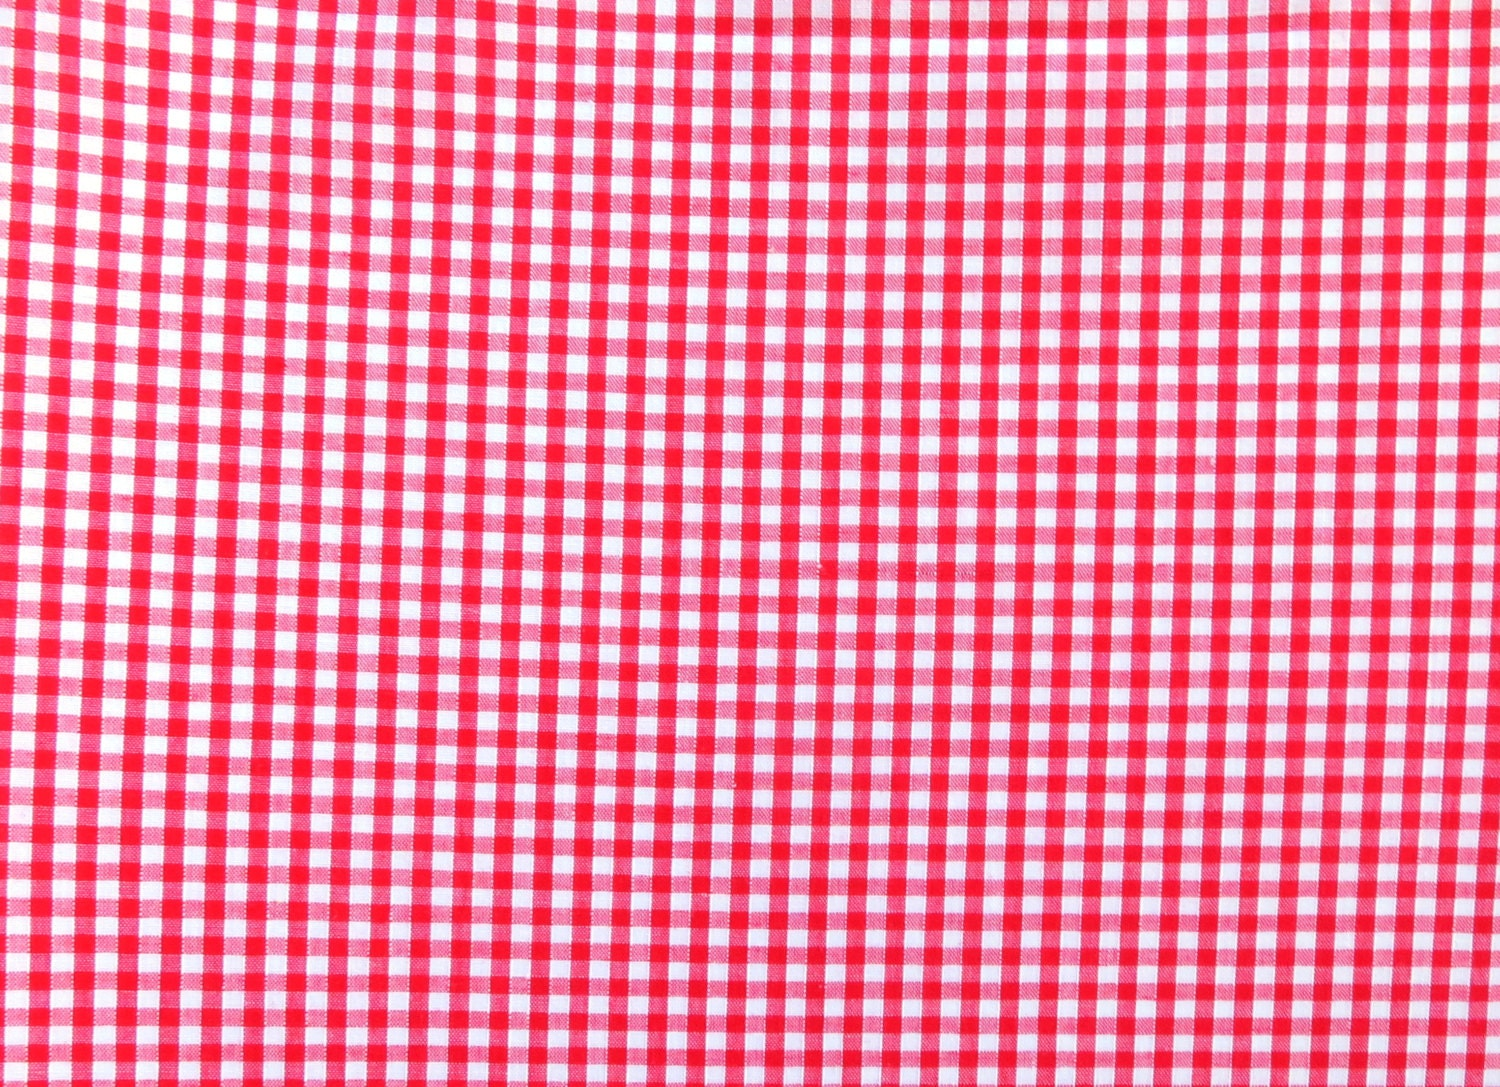 Red gingham fabric red check fabric small checked fabric for Gingham fabric